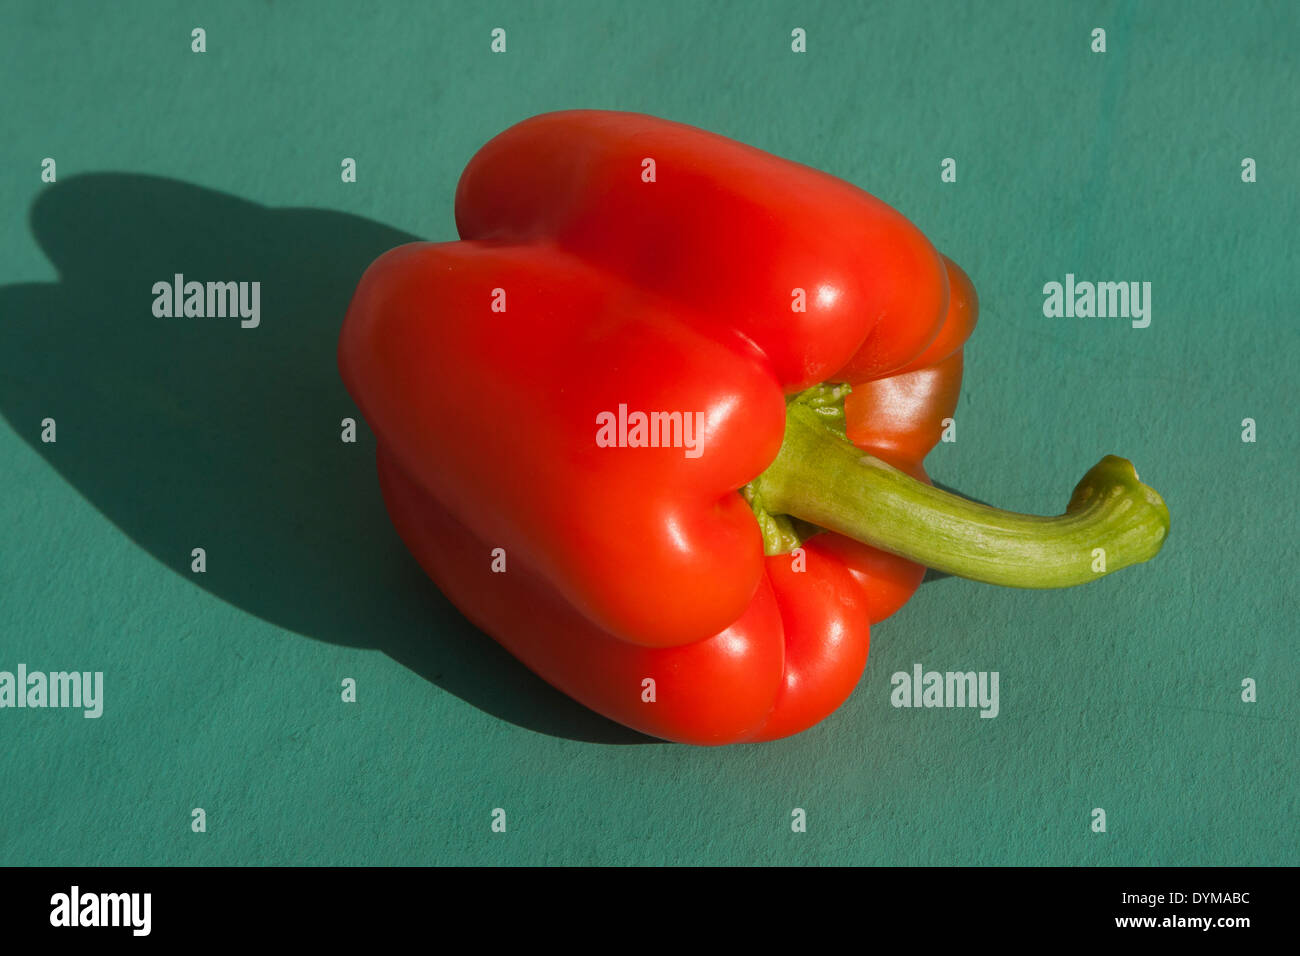 Red Bell pepper on green background - Stock Image